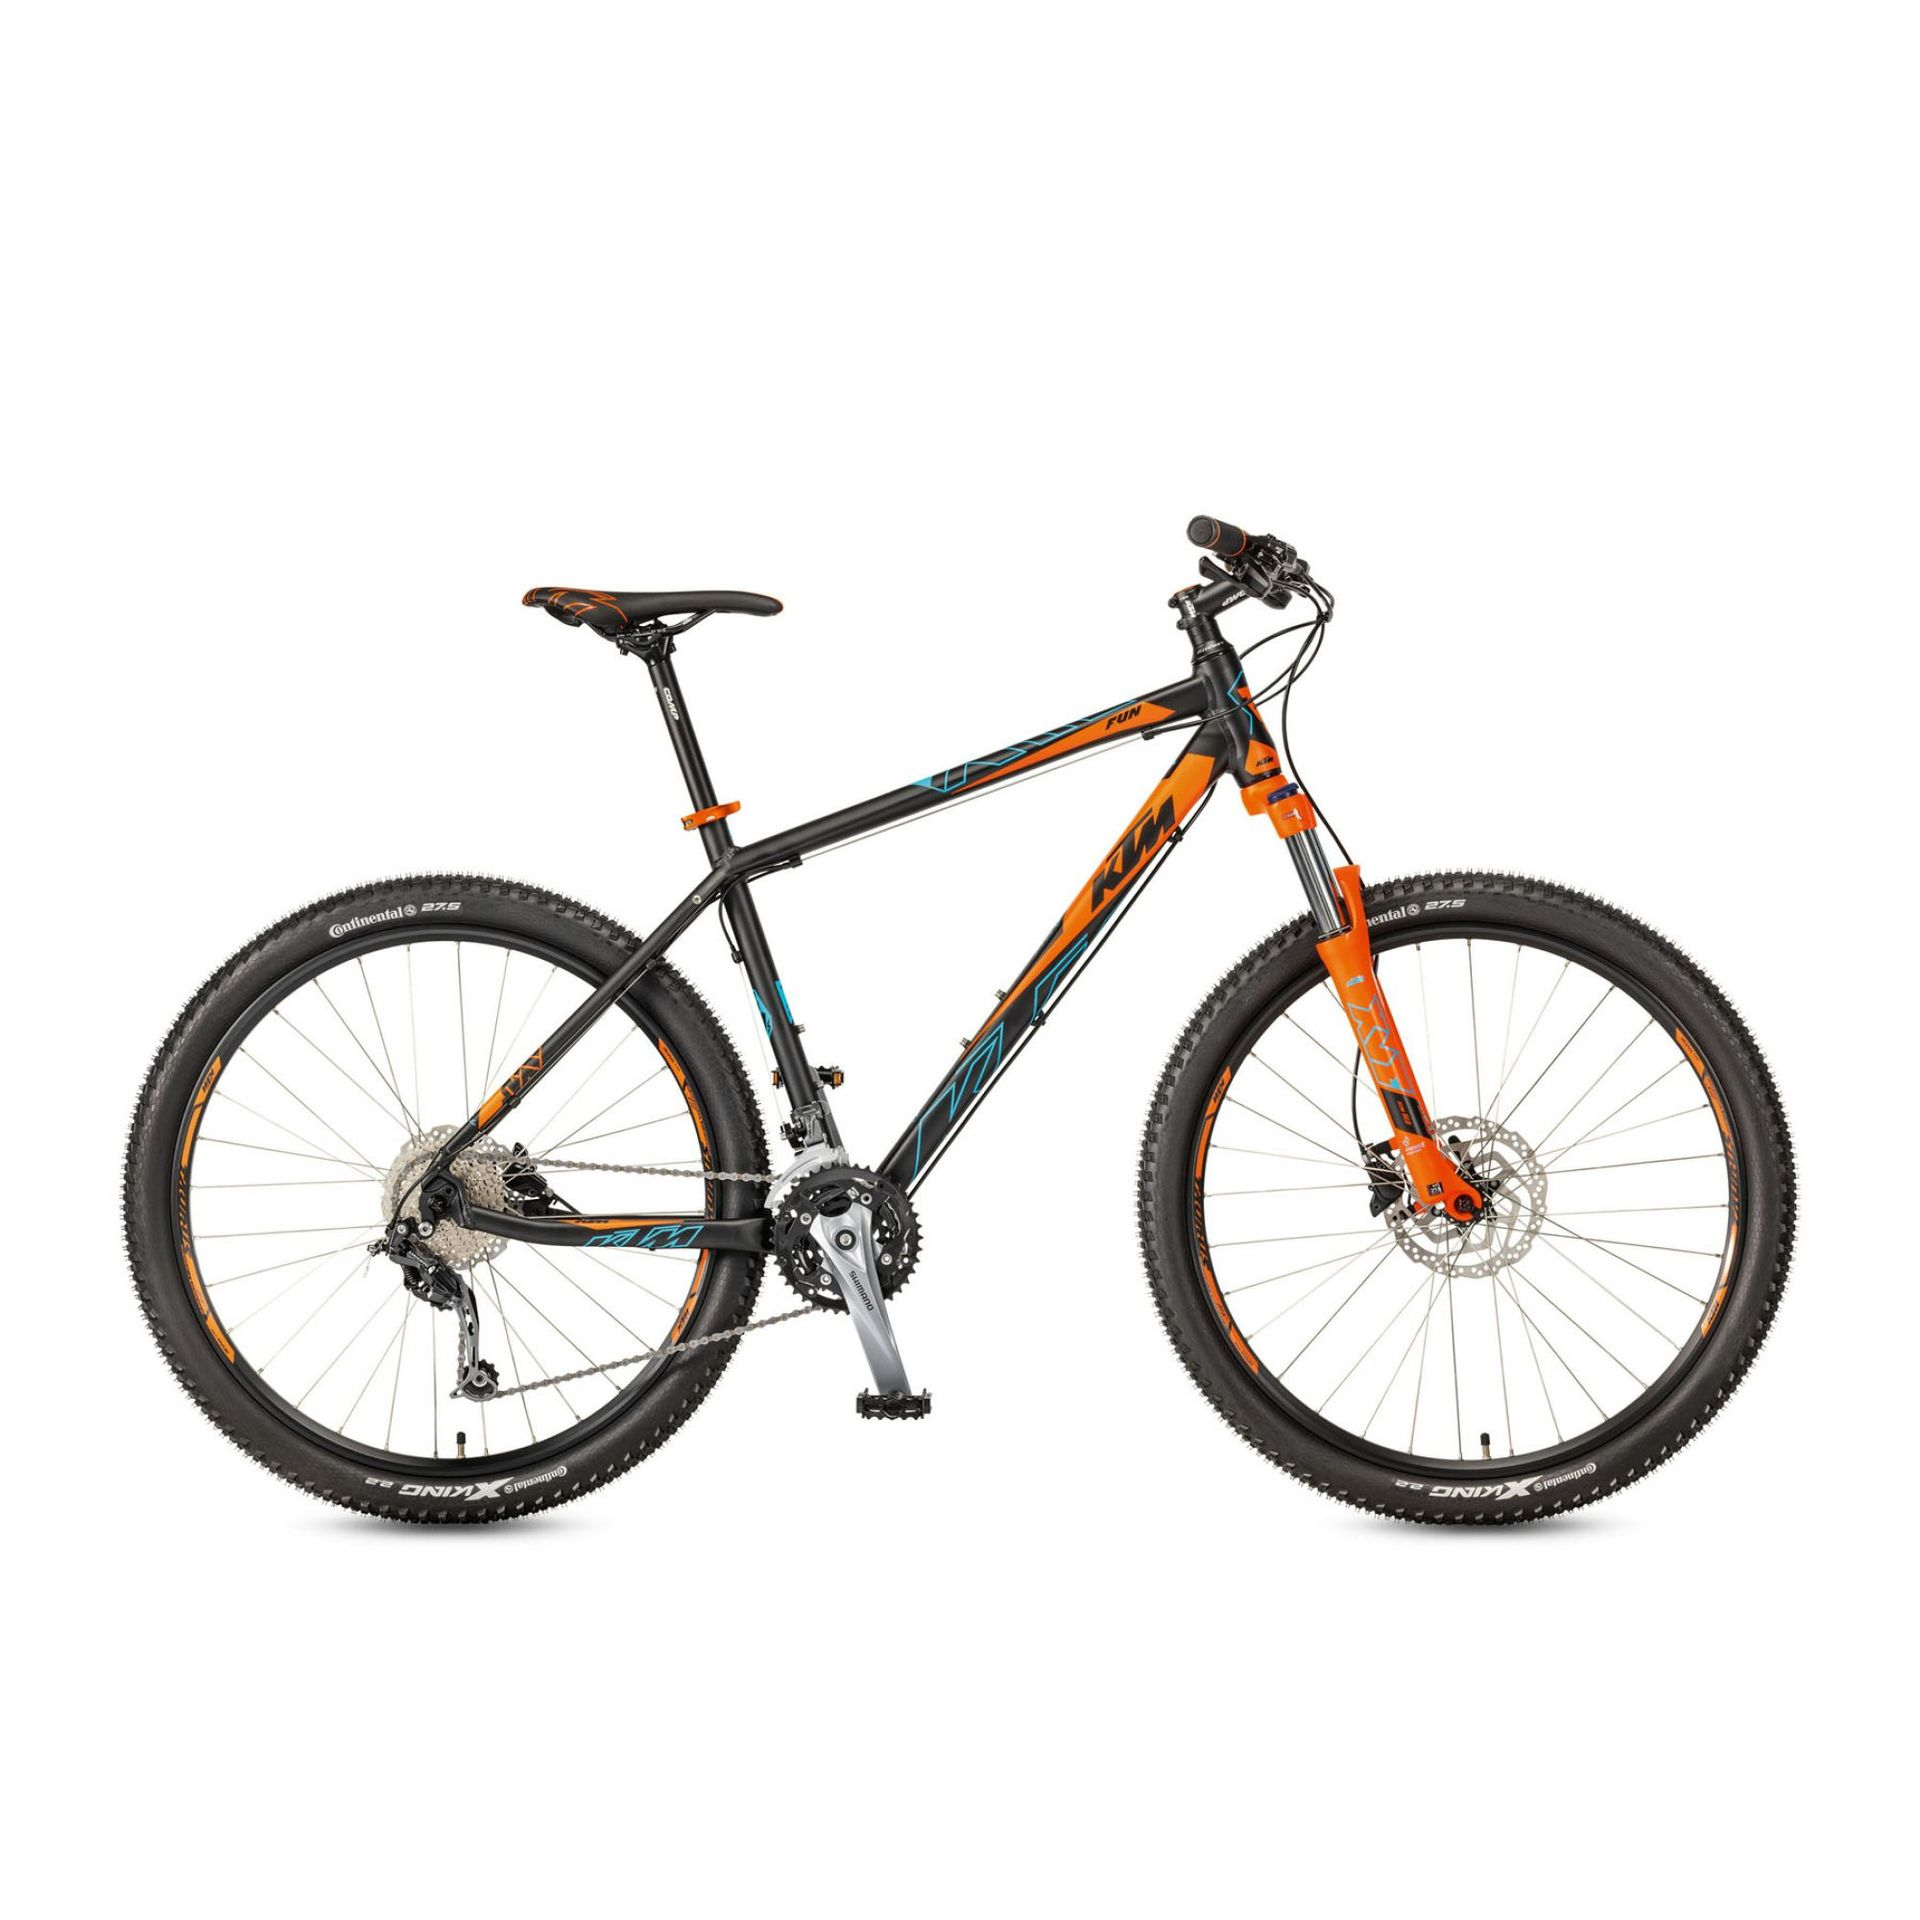 ROWER KTM ULTRA FUN 27 KOŁA 27.5 BLACK MATT - ORANGE MARSEILLEBLUE 1